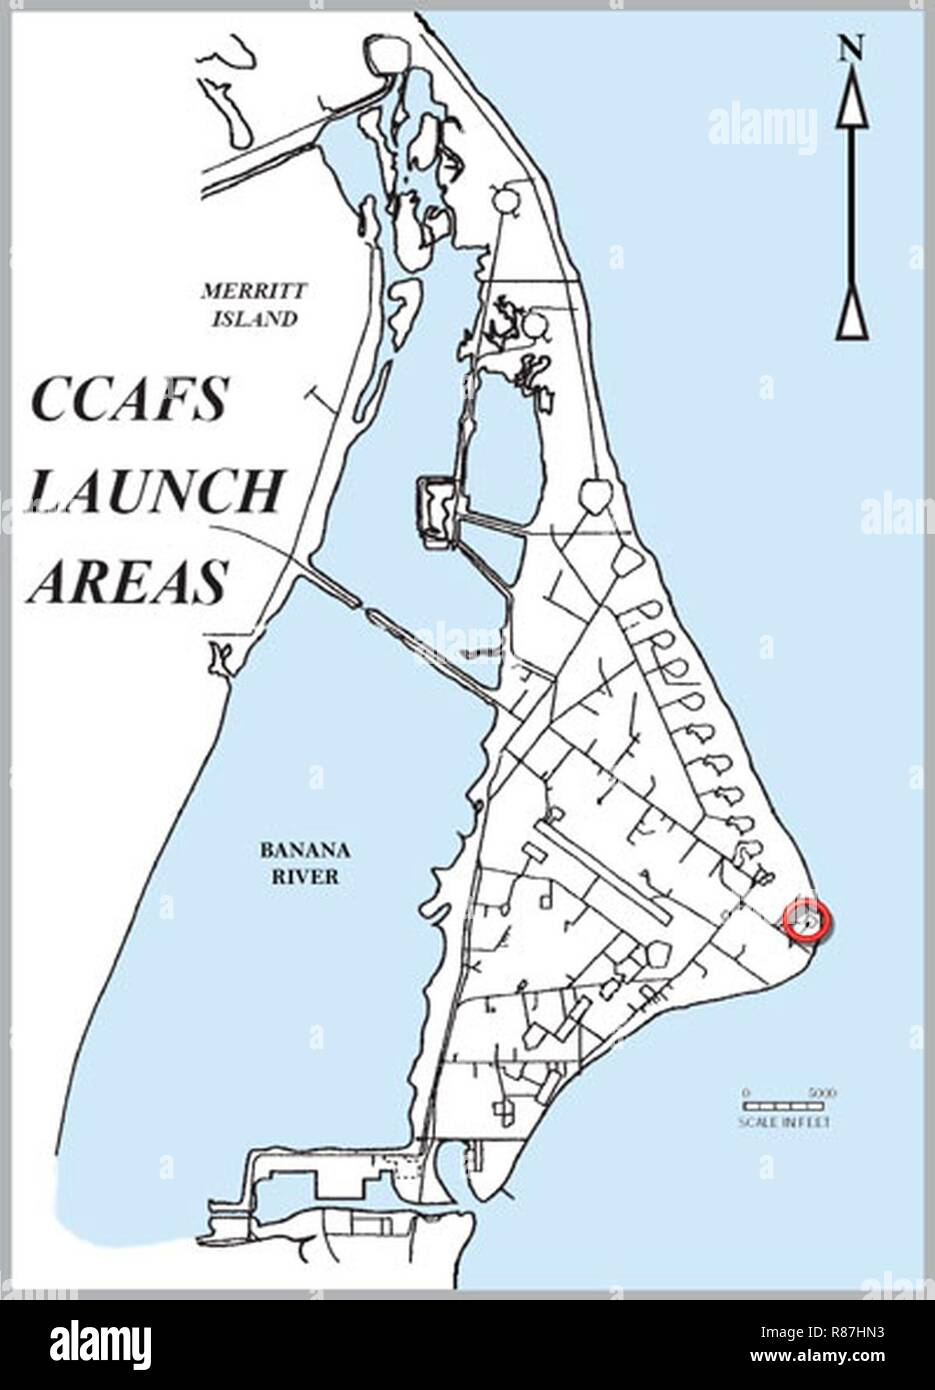 Cape Canaveral Launch Complex 45 Map Stock Photo: 228819615 ... on myakka map, southwest gulf coast map, cape kennedy map, frostproof map, cape blanco map, cape hatteras map, canaveral groves map, beach in indialantic fl map, lake okeechobee map, gladeview map, cape cod map, great basin map, south daytona beach map, canaveral port authority map, florida map, canaveral barge canal map, st. augustine map, key west map, cape flattery map, the everglades map,